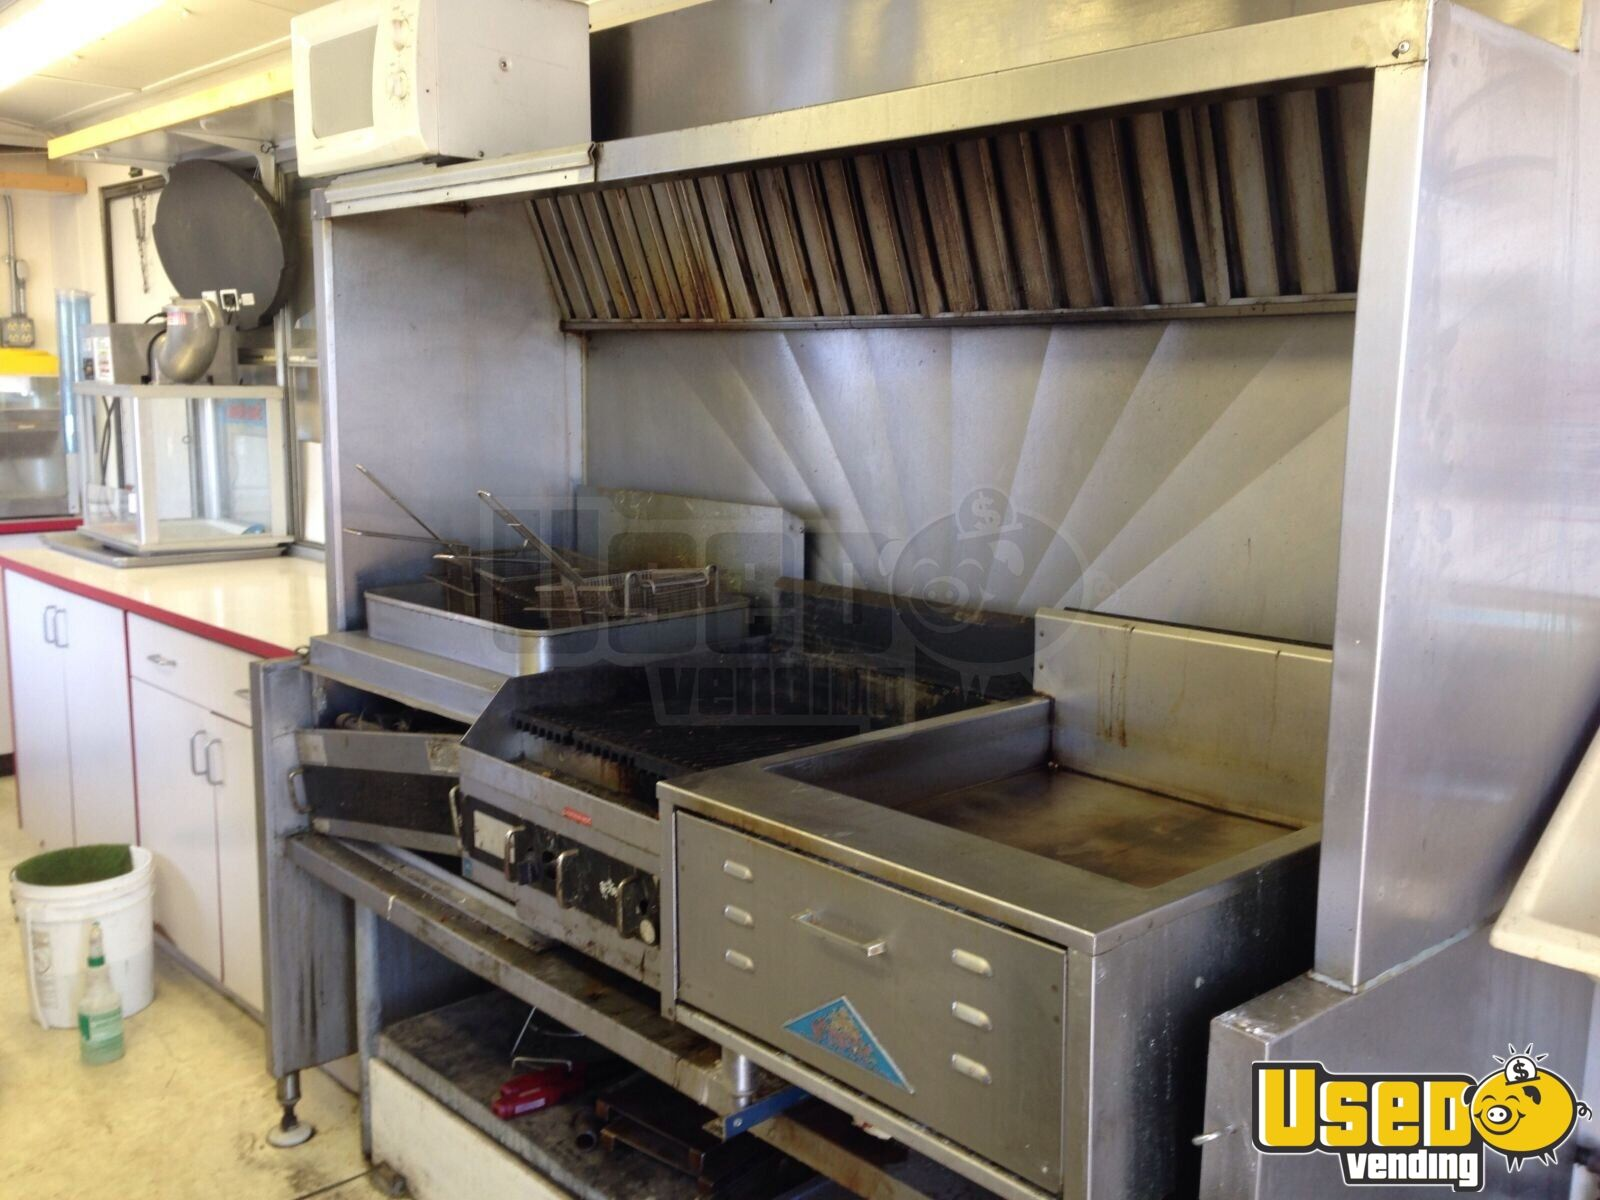 used commercial kitchen equipment buyers red aid mixer 20 39 concession trailer for sale in nebraska mobile